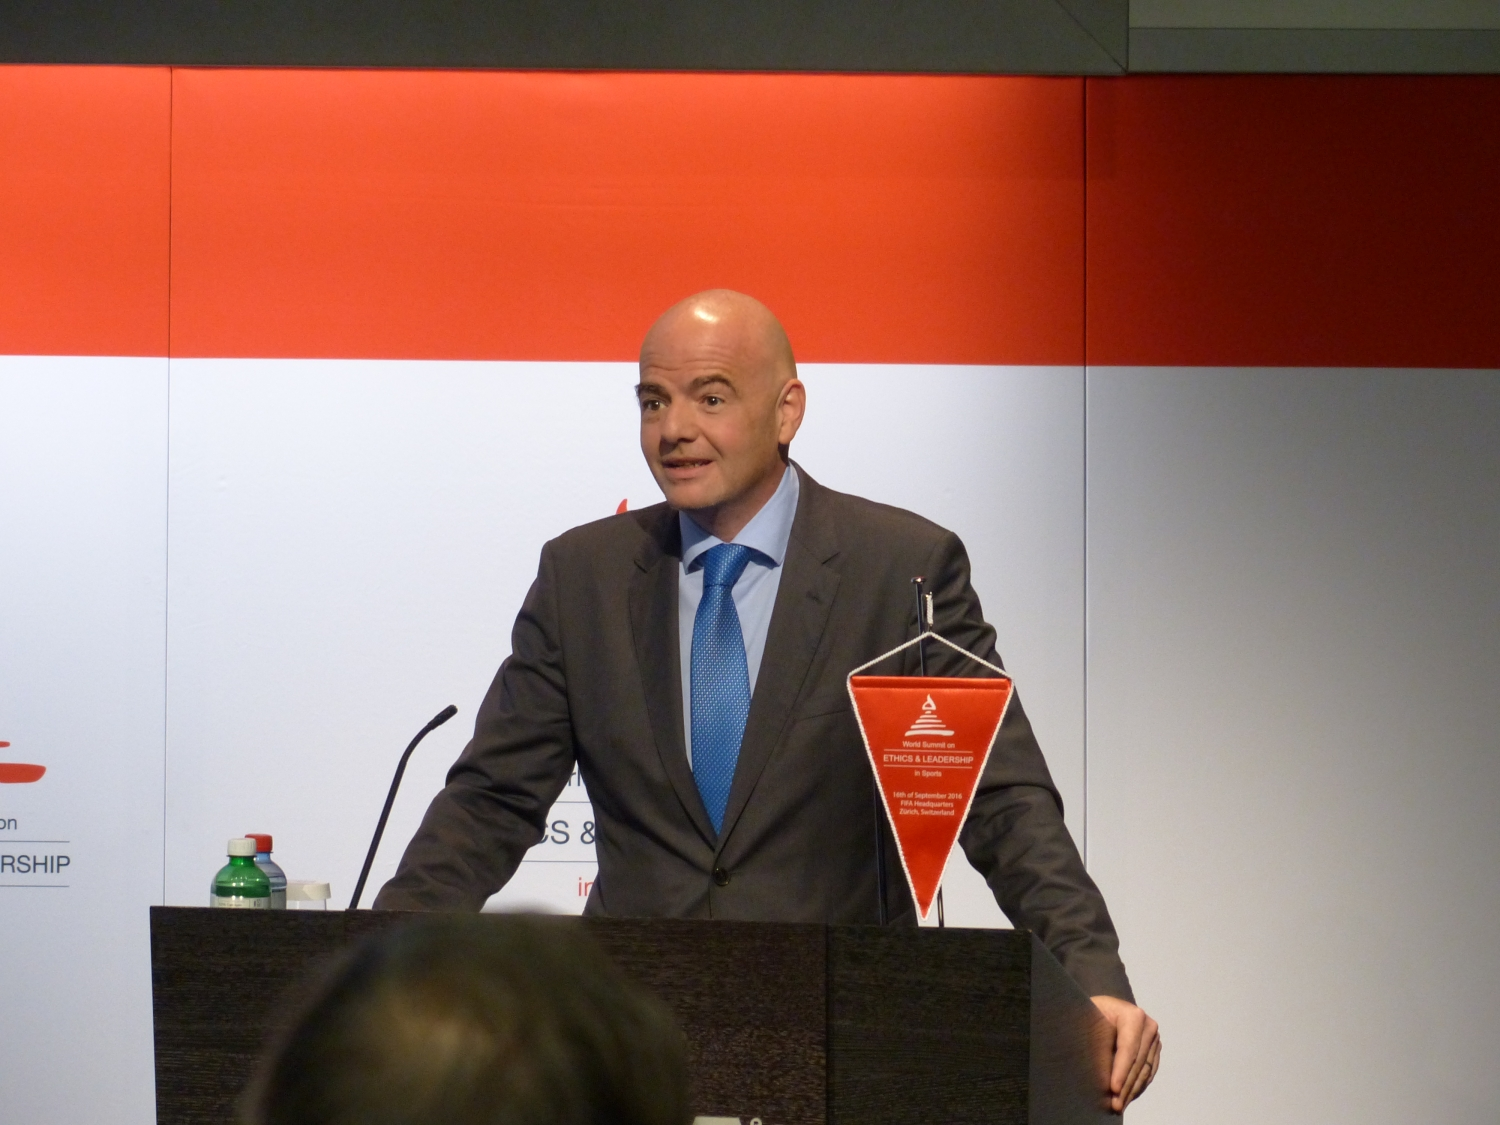 President of the FIFA - Dr. Gianni Infantino